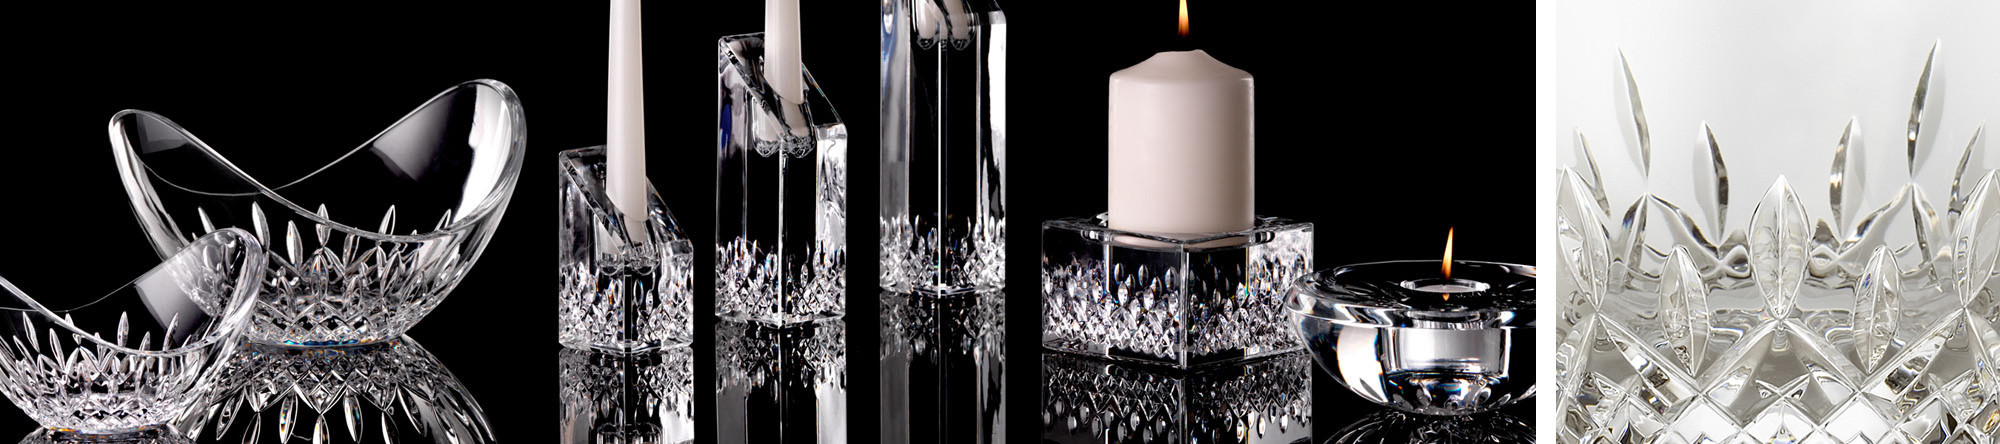 waterford giftology sugar bud vase of lismore essence collection home gifts waterforda crystal regarding lismore essence gift top